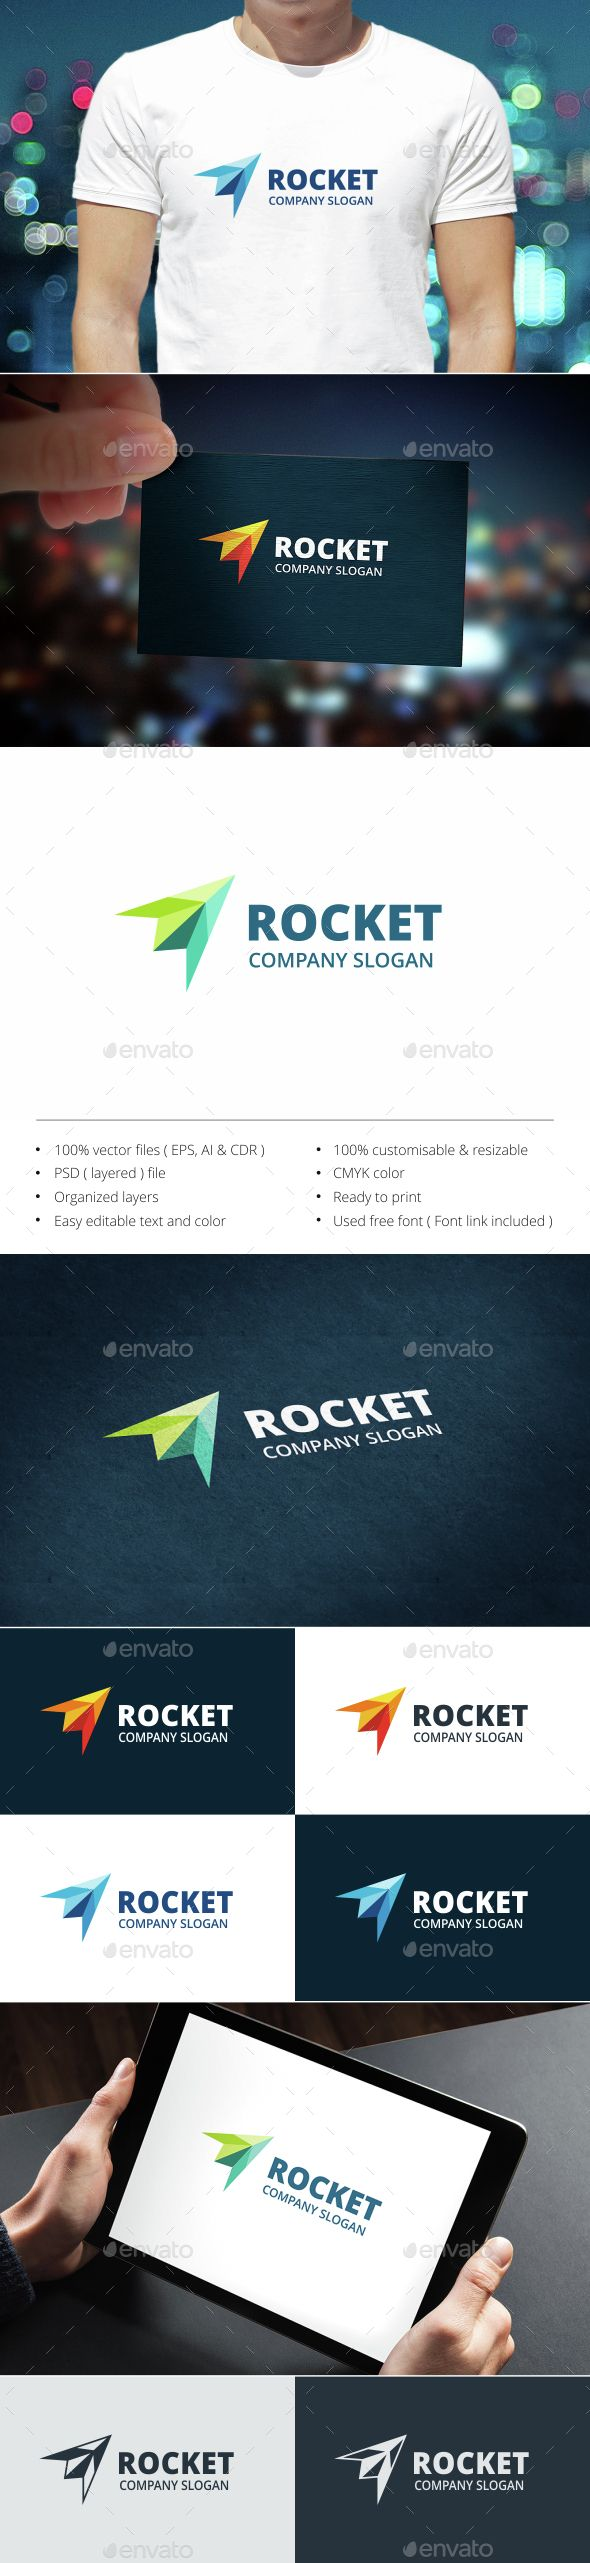 Rocket Logo  #application #apps #audio #$30